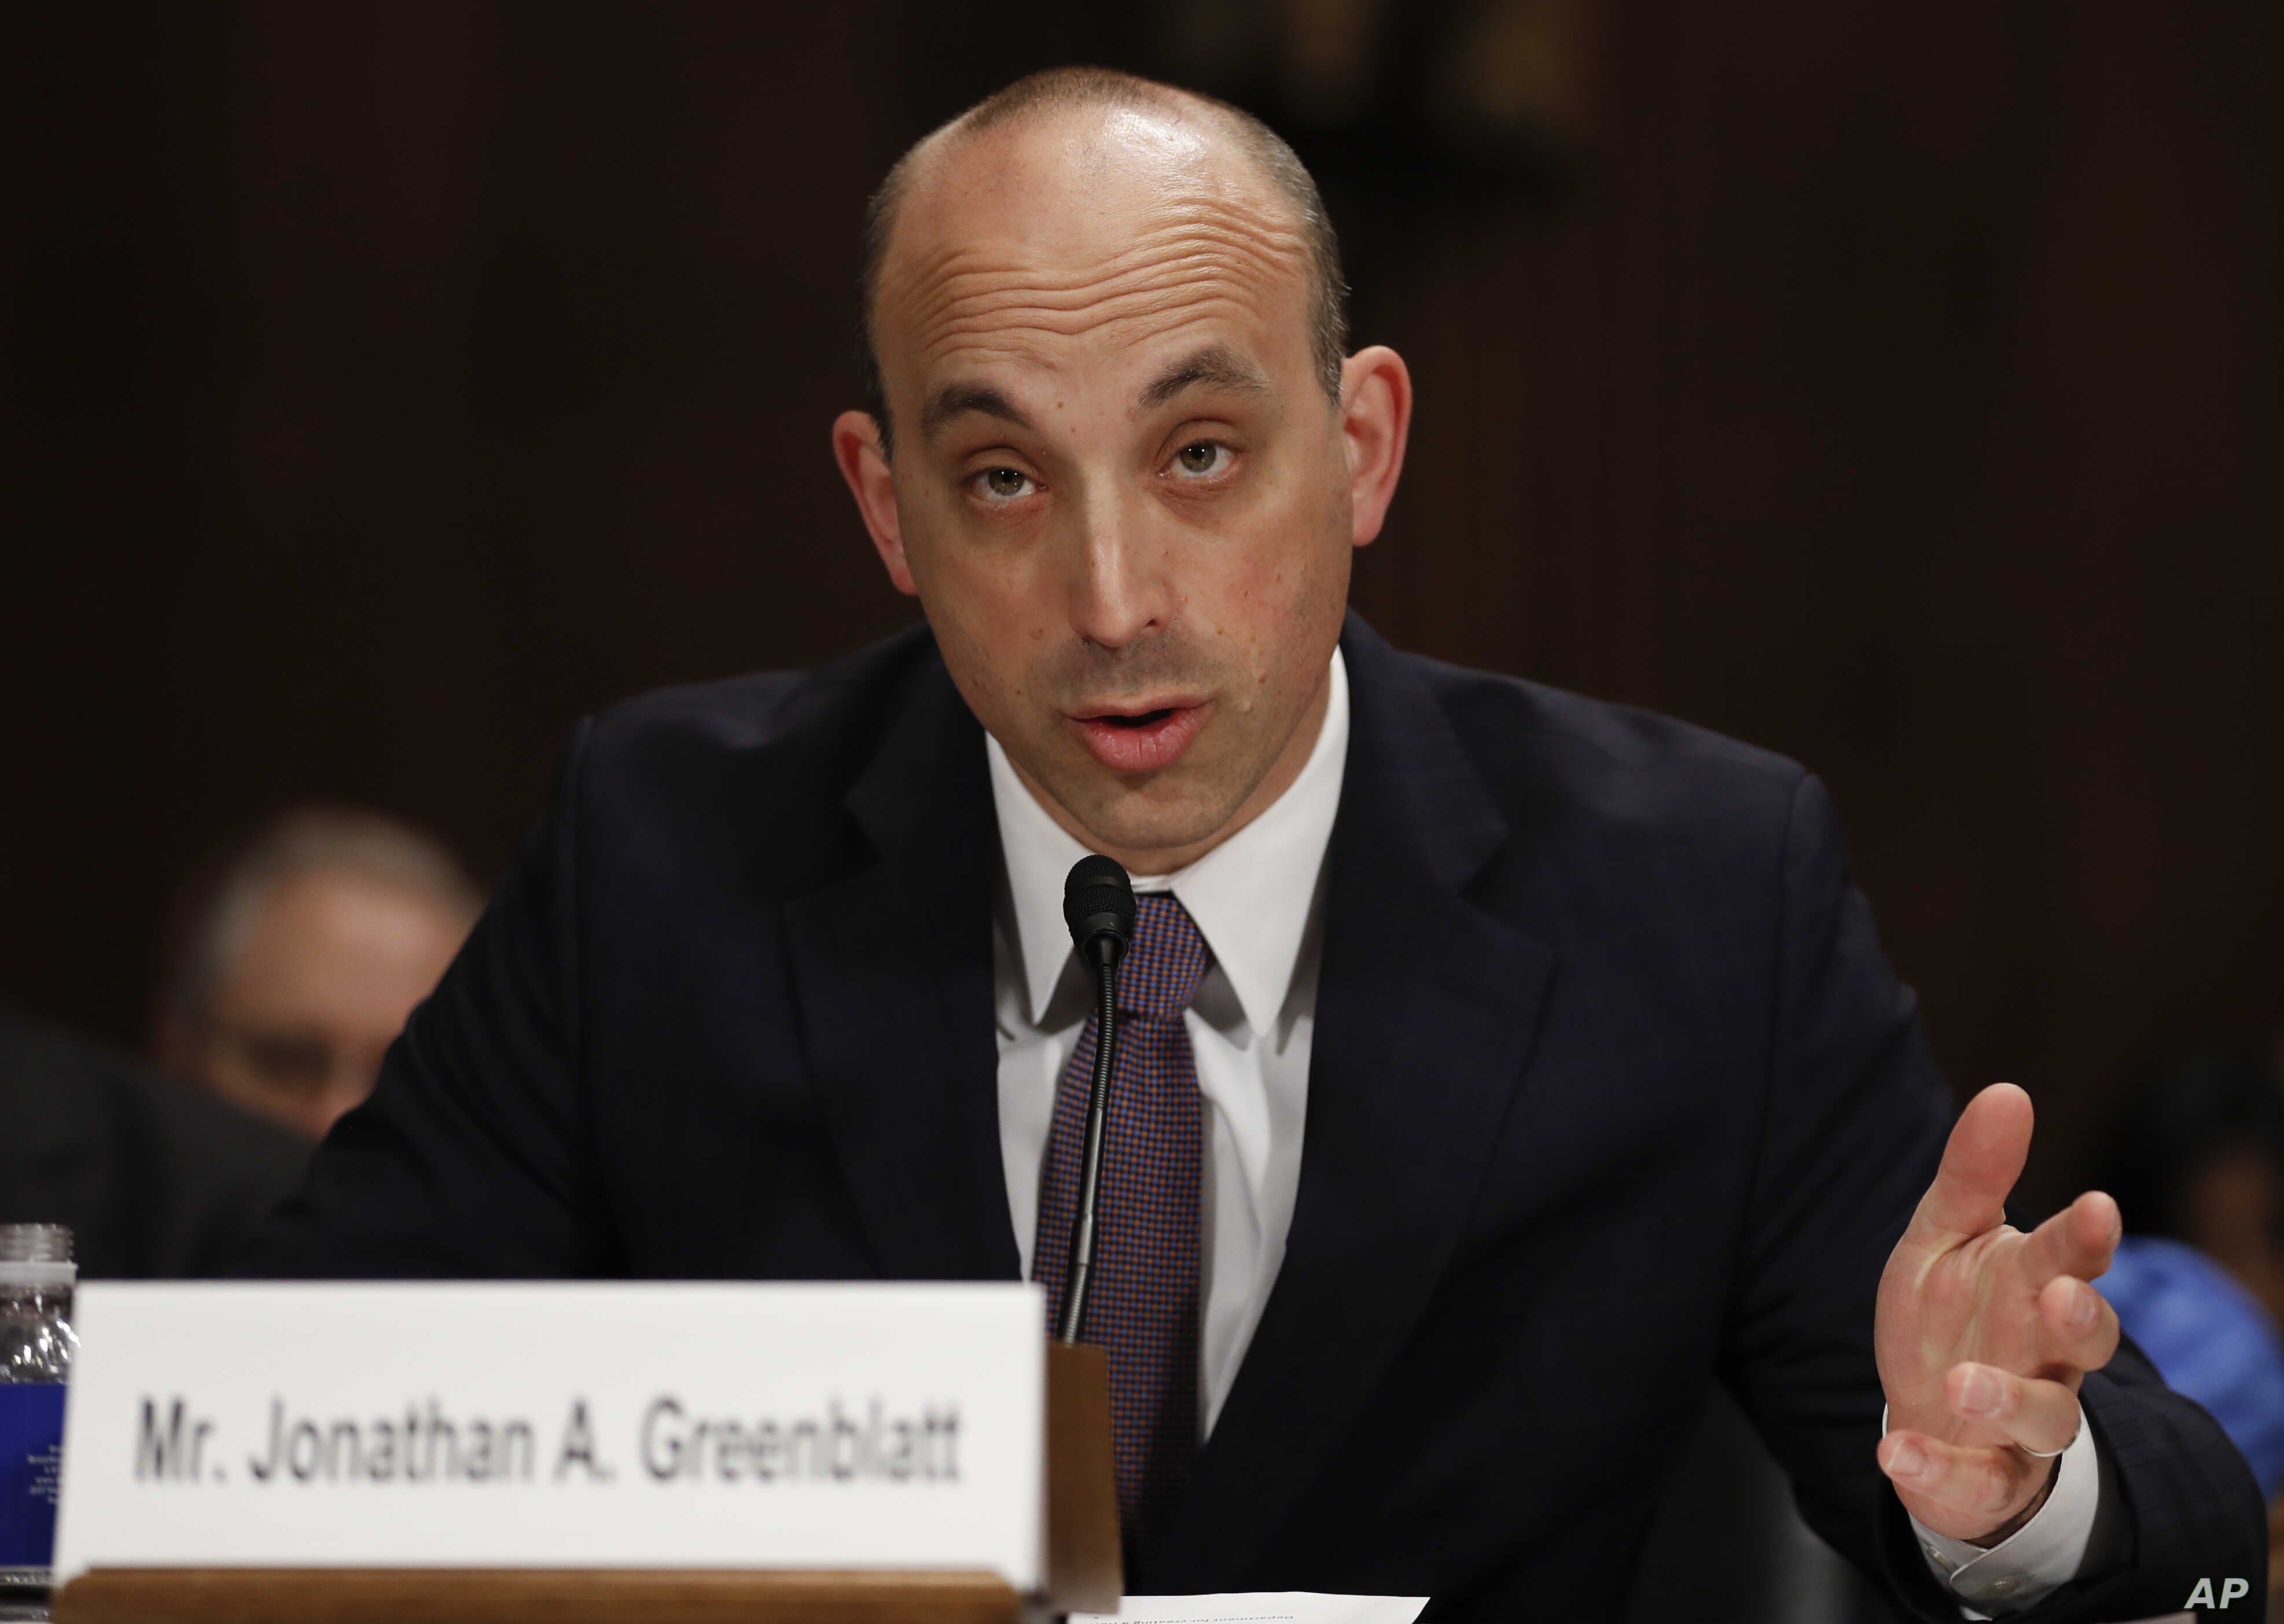 FILE - Jonathan Greenblatt, CEO And National Director of the Anti-Defamation League testifies on Capitol Hill in Washington, May 2, 2017, before a Senate Judiciary Committee hearing on responses to the increase in religious hate crimes.